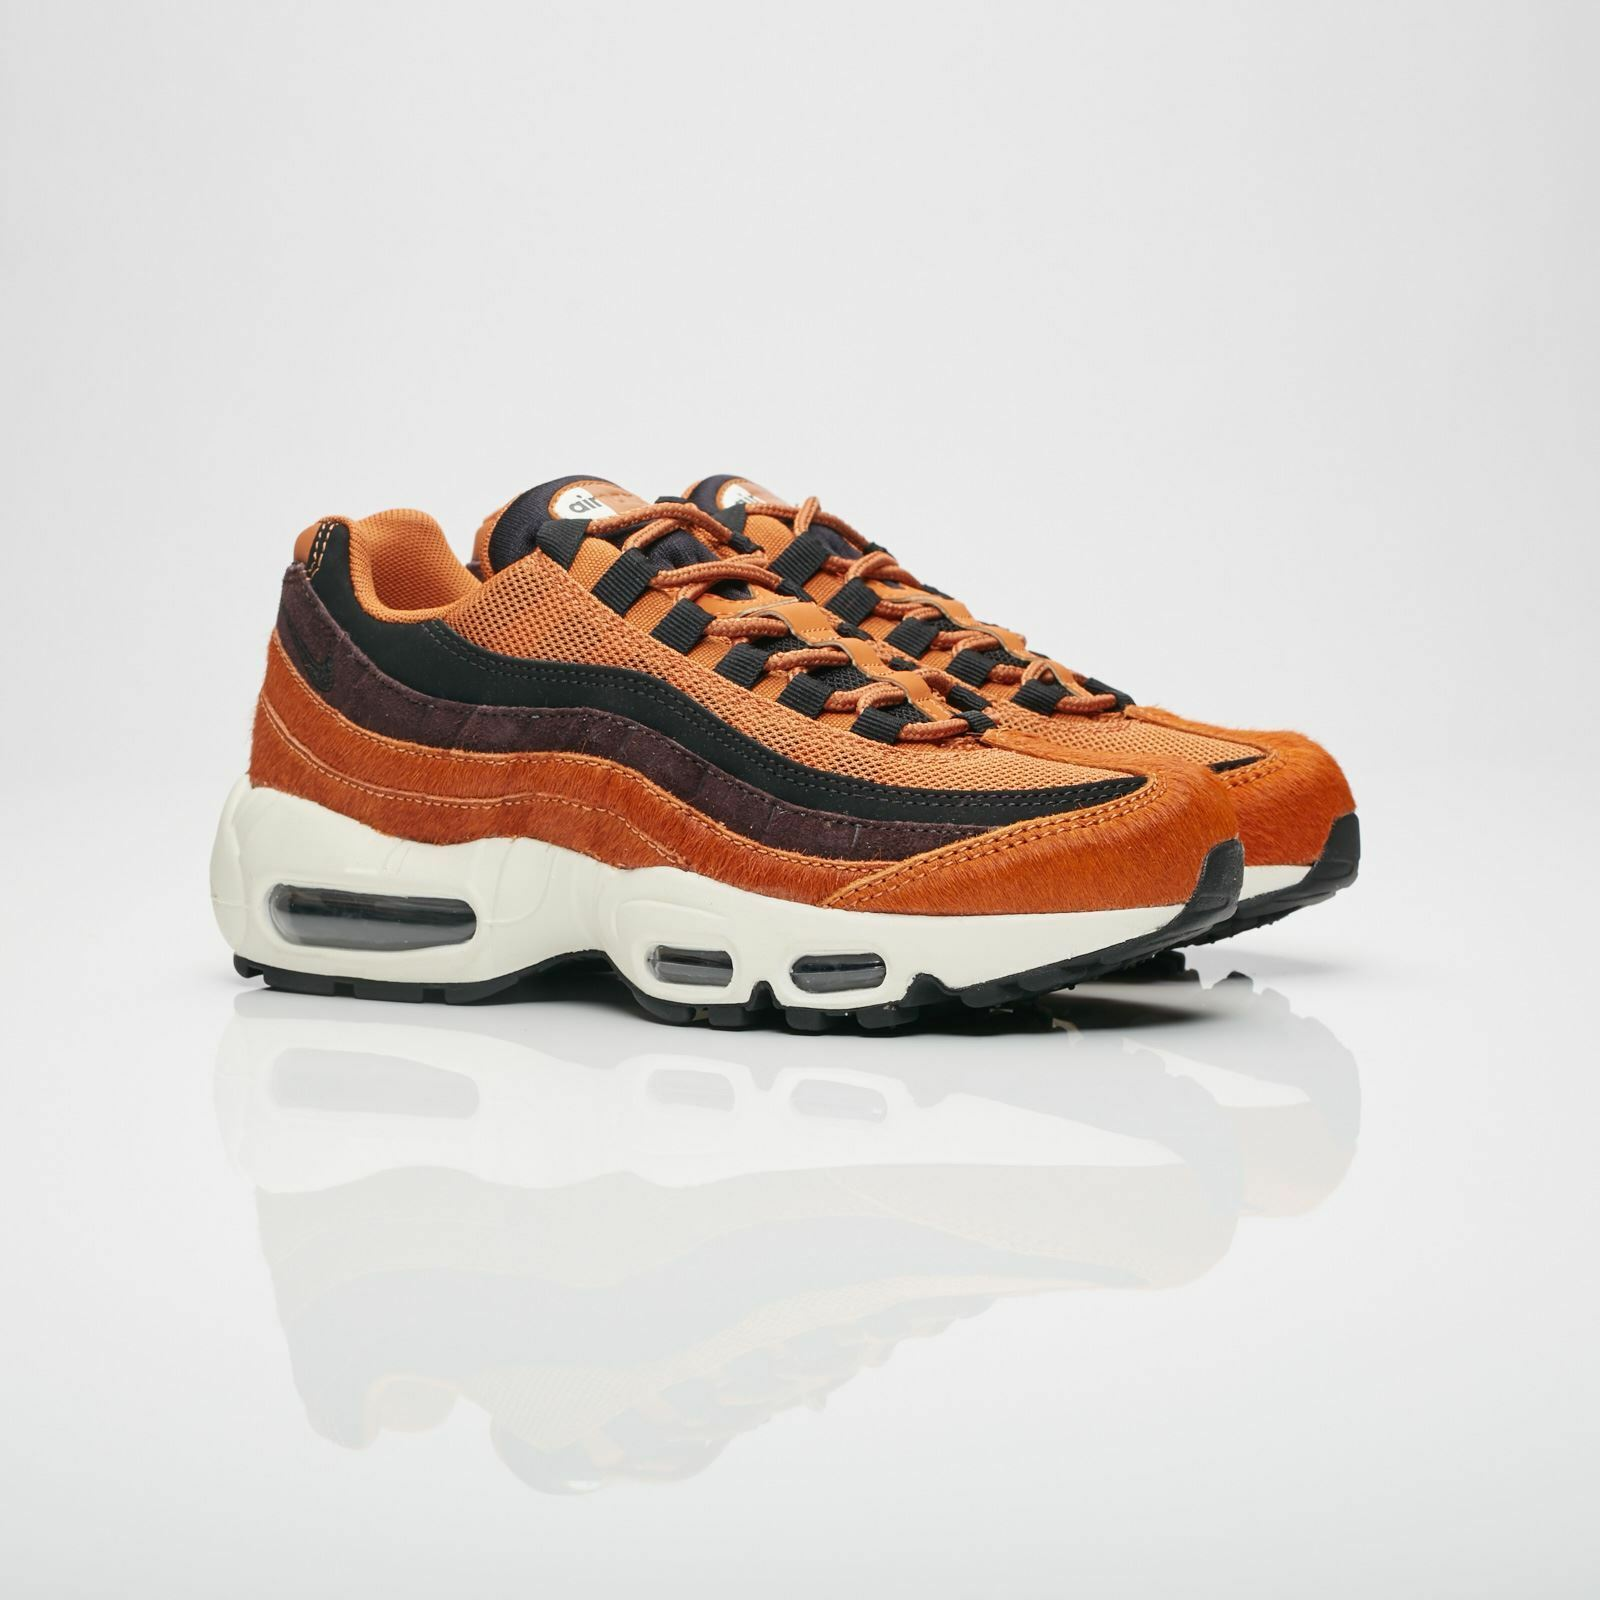 Nike Womens Air Max 95 LX Cider Trainers AA1103 200